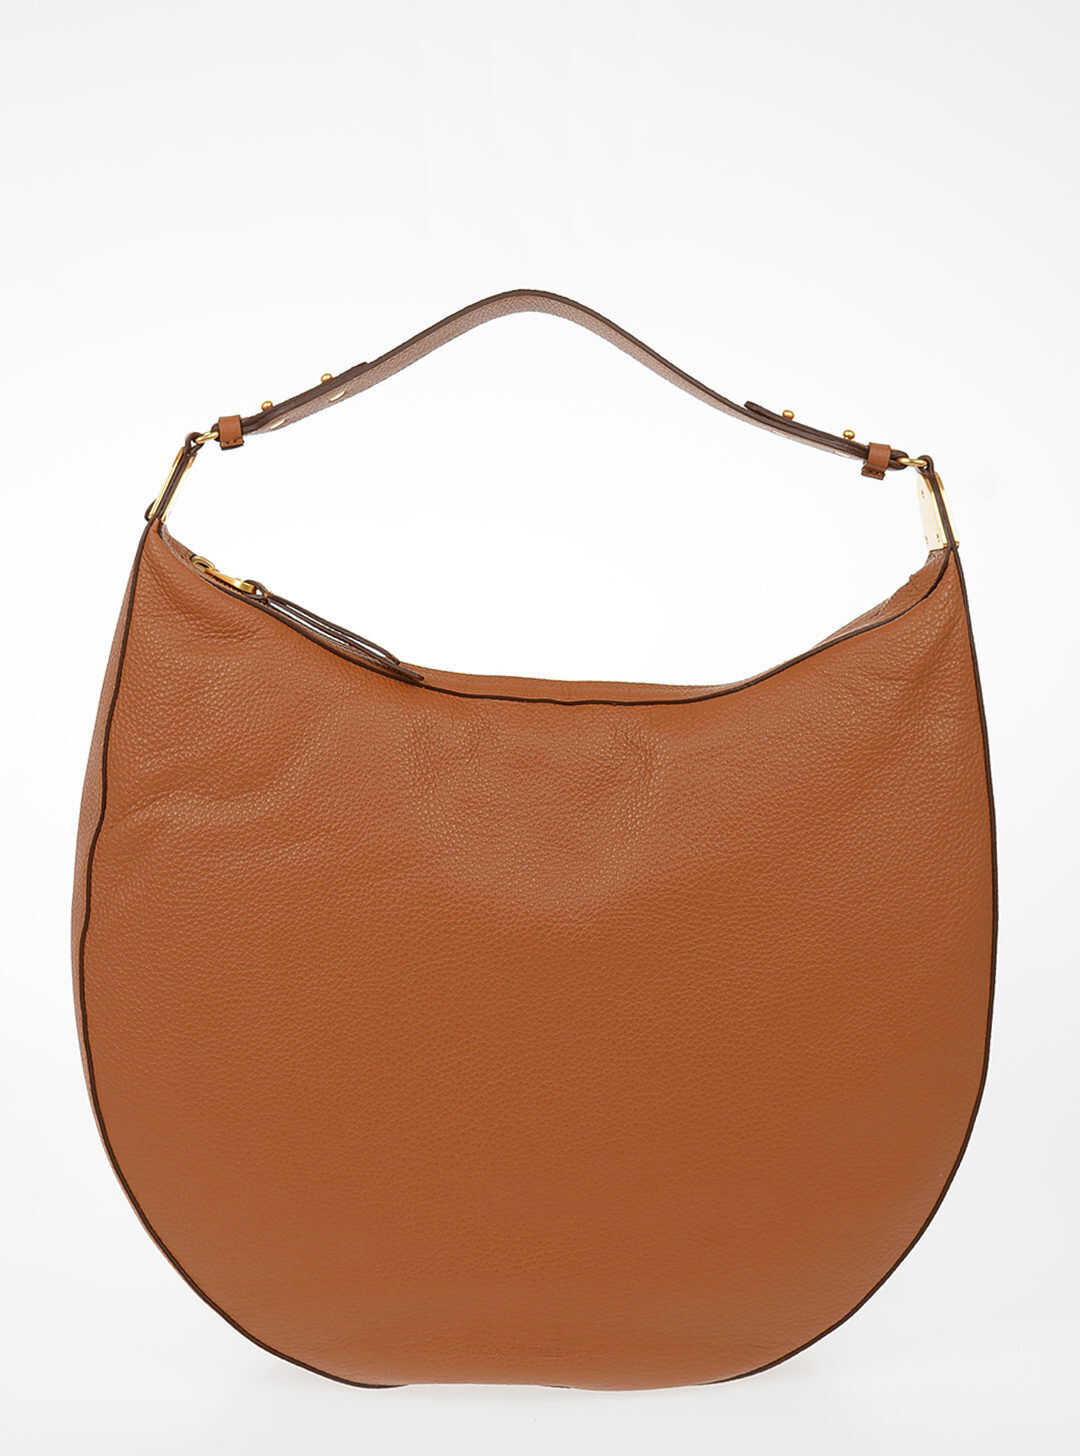 Coccinelle Leather ANAIS Hobo Bag BROWN imagine b-mall.ro